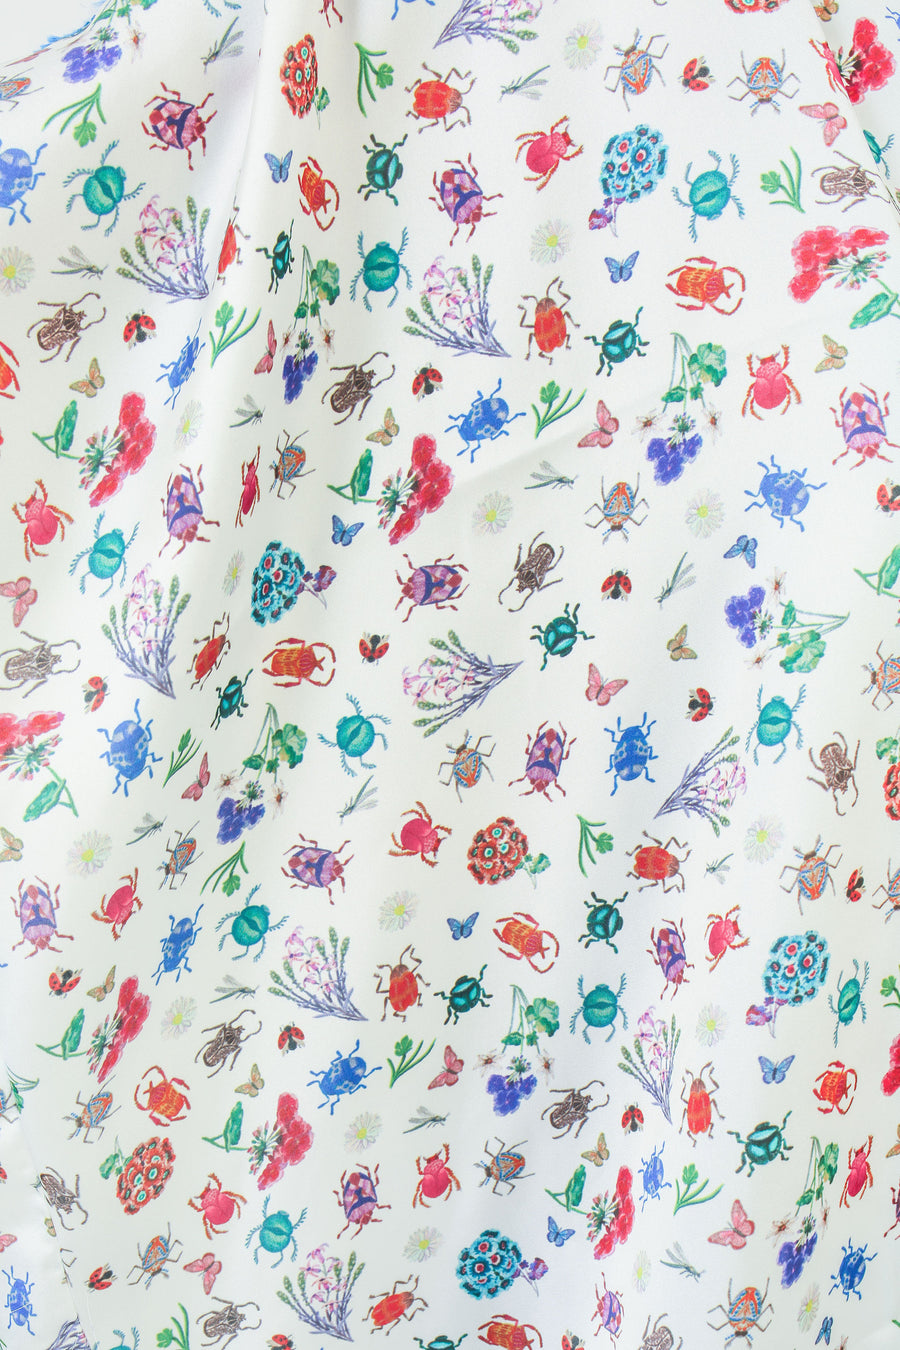 CECE TOP ENCHANTED FOREST PRINT *LIMITED*EDITION*